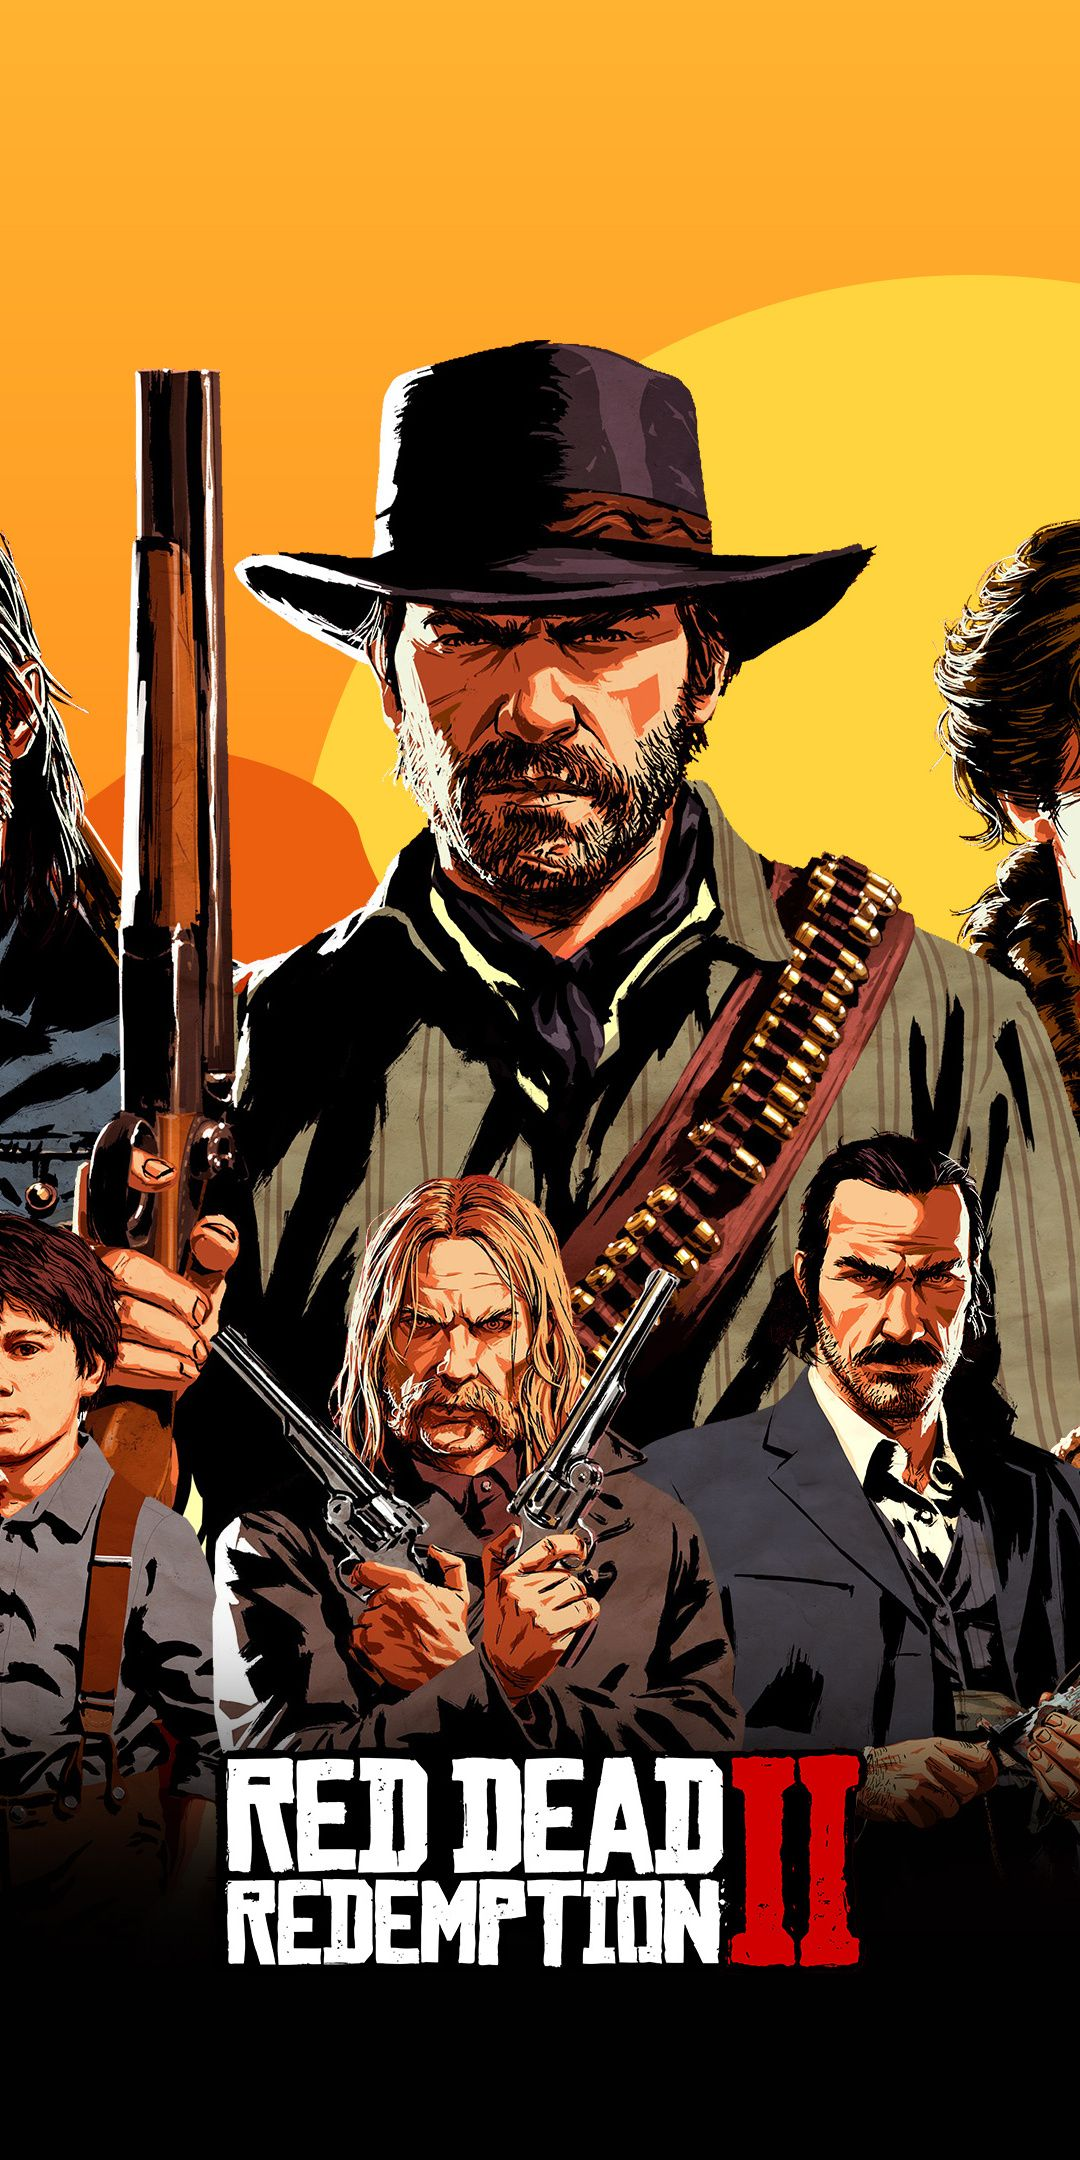 Game, video game, Red Dead Redemption 2, 2018, poster